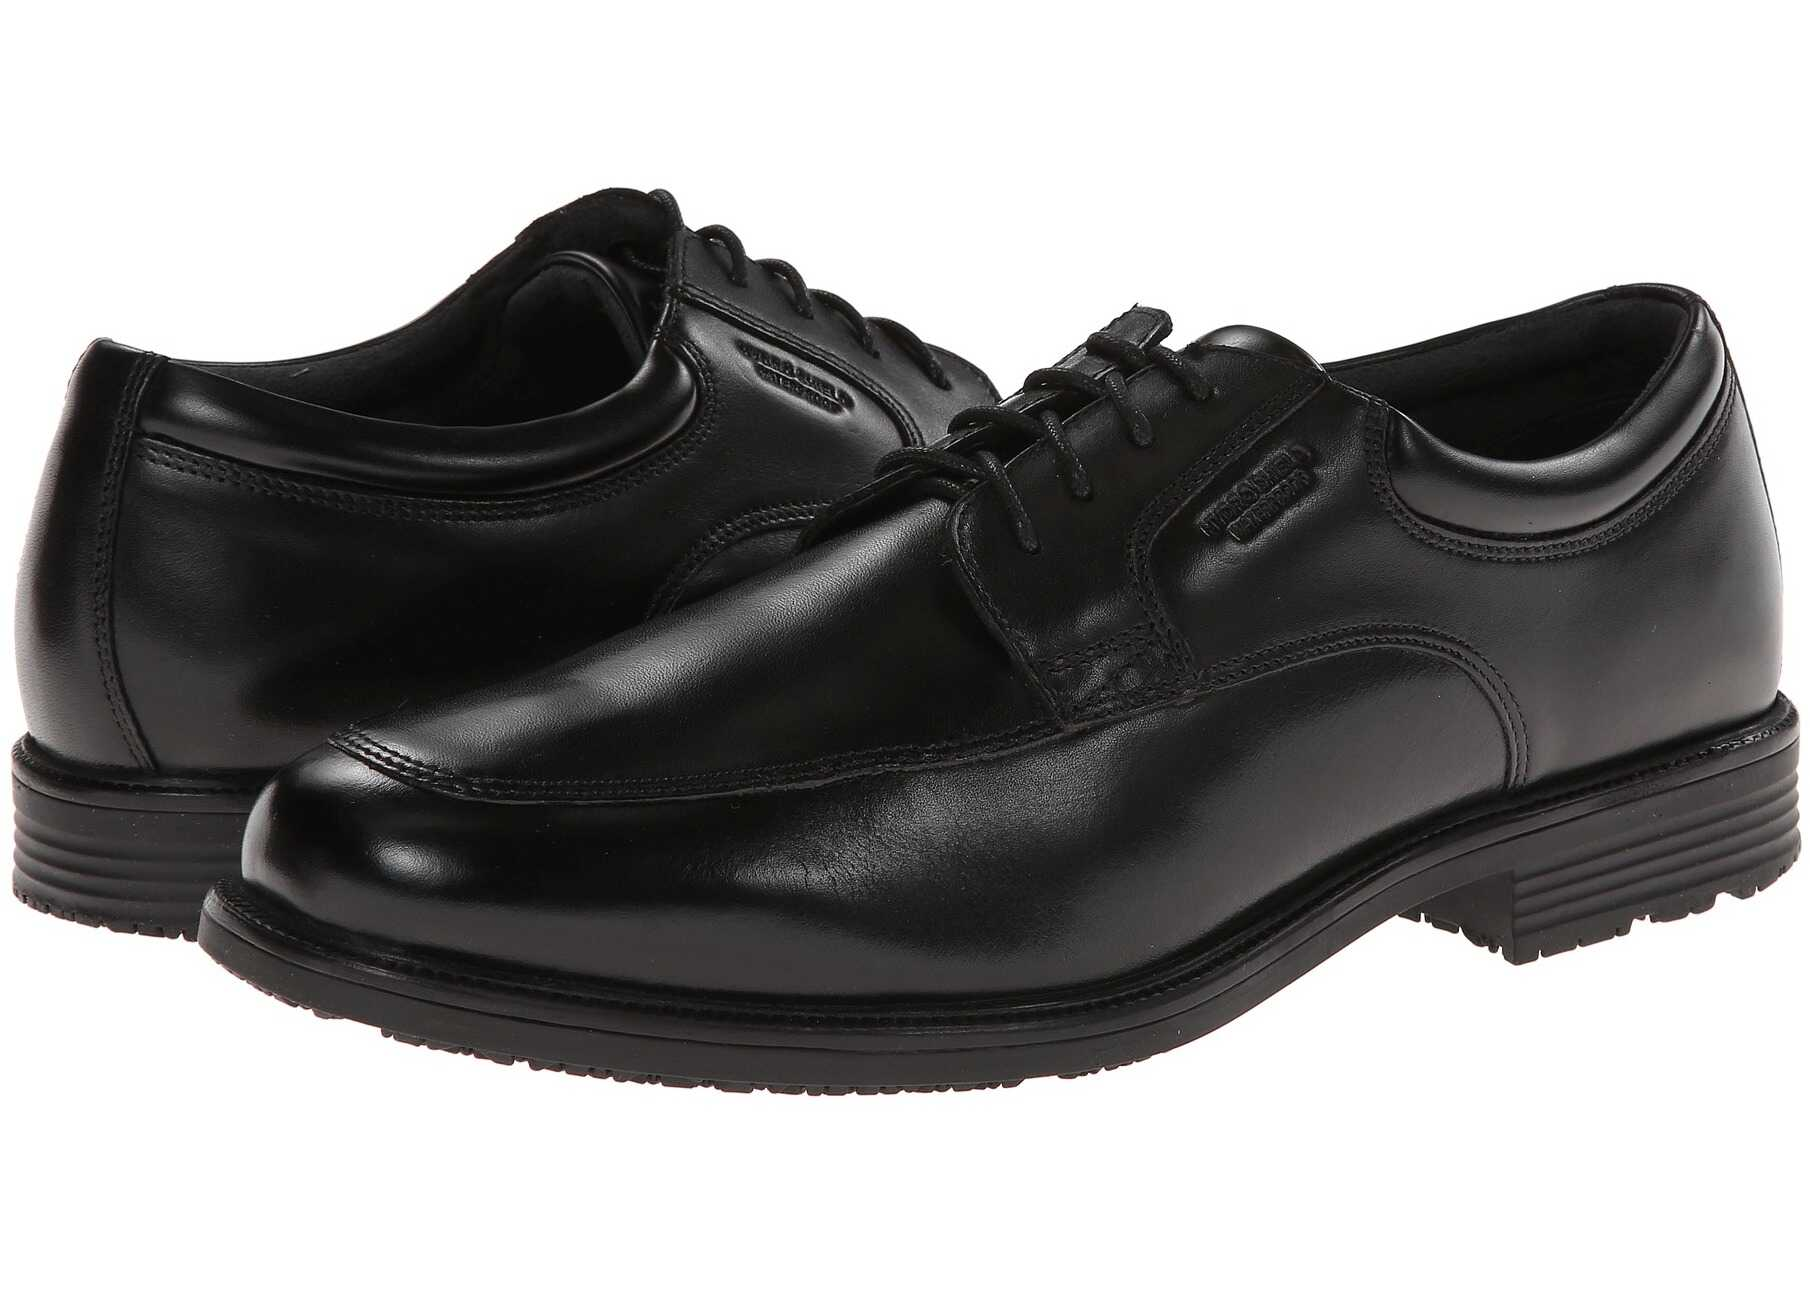 Rockport Lead The Pack Apron Toe Black WP Leather